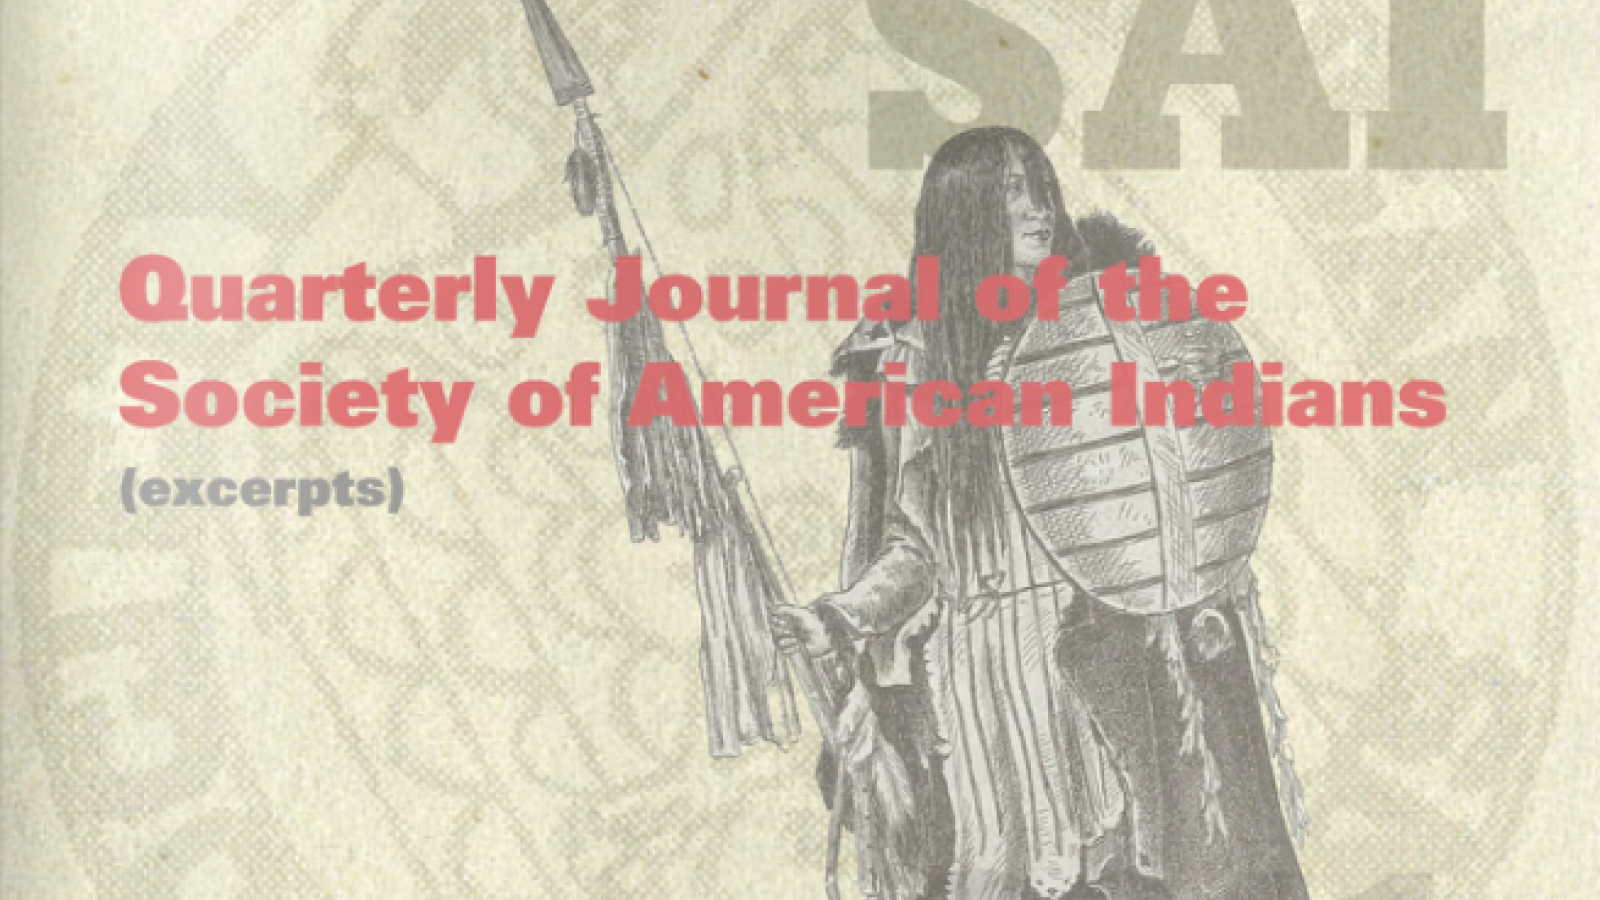 Quarterly Journal of the Society of American Indians, Image 1